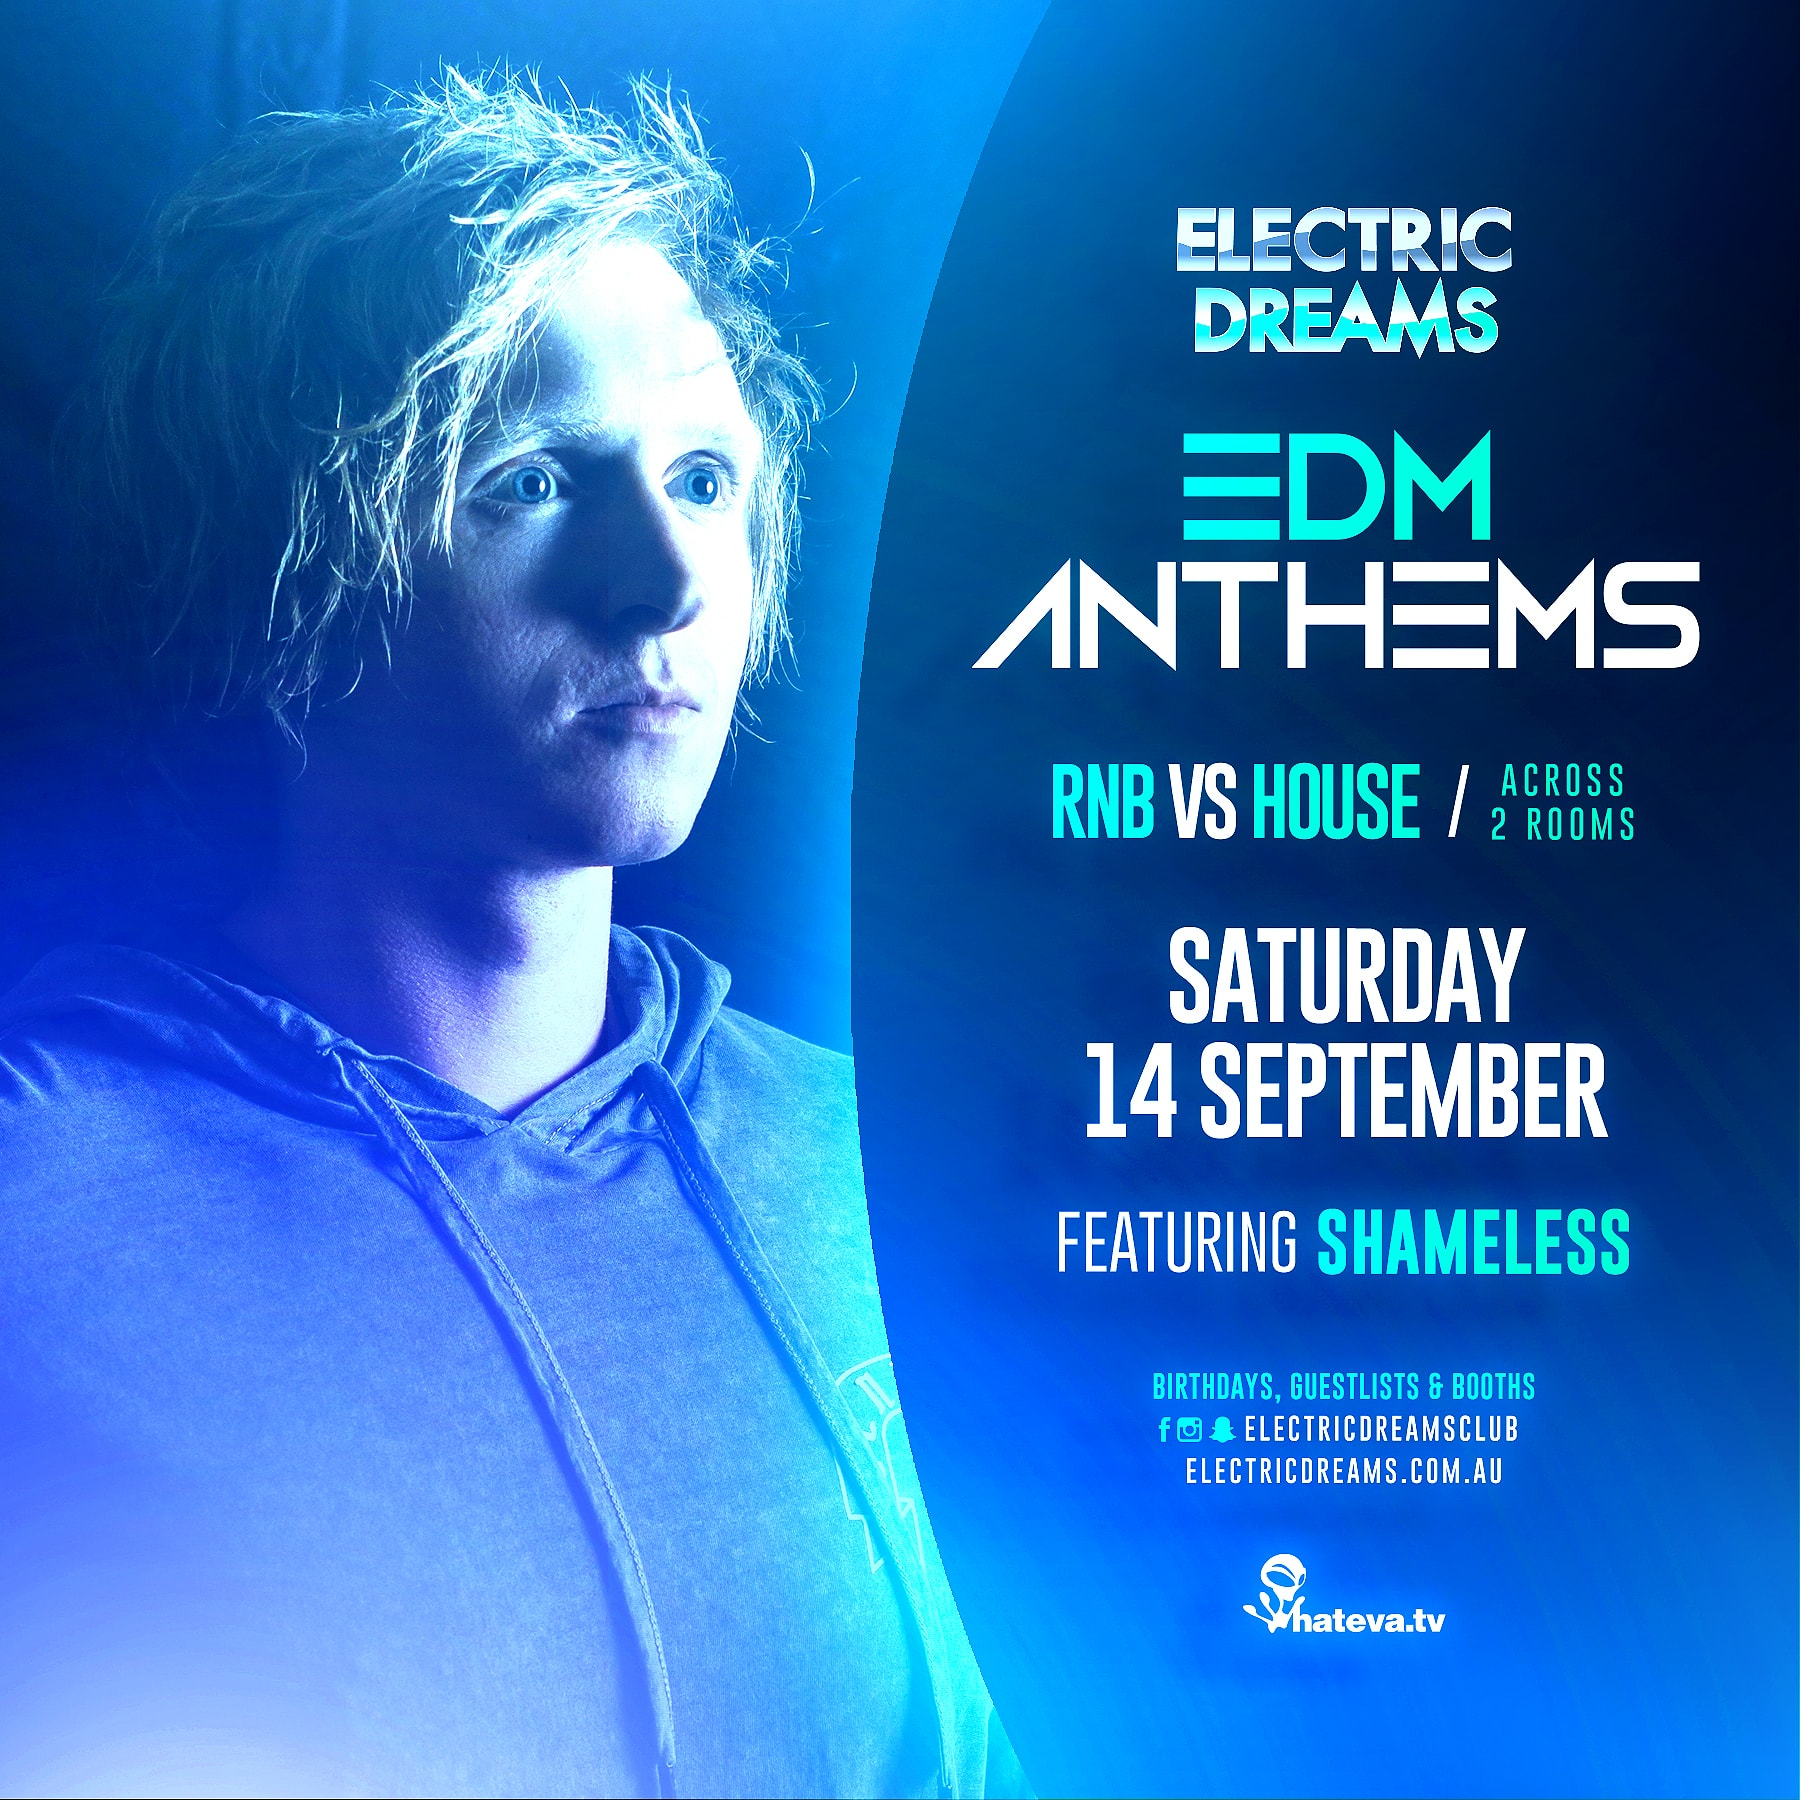 ED_September-14_EDM-Anthems_V1-min.jpg